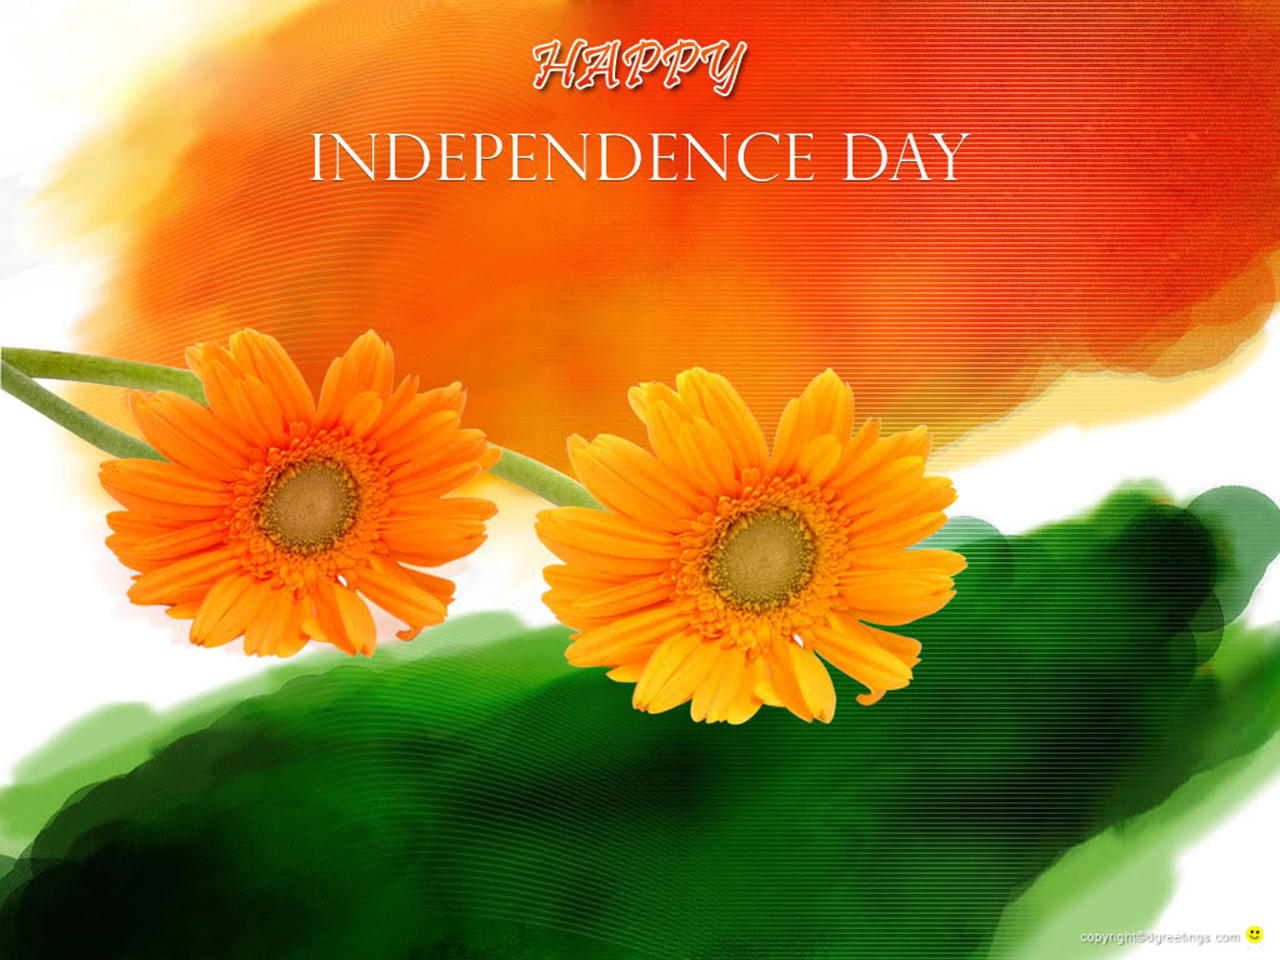 Independence Day Mobile Wallpapers: Free Wallpapers: Indian Independence Day Wallpapers